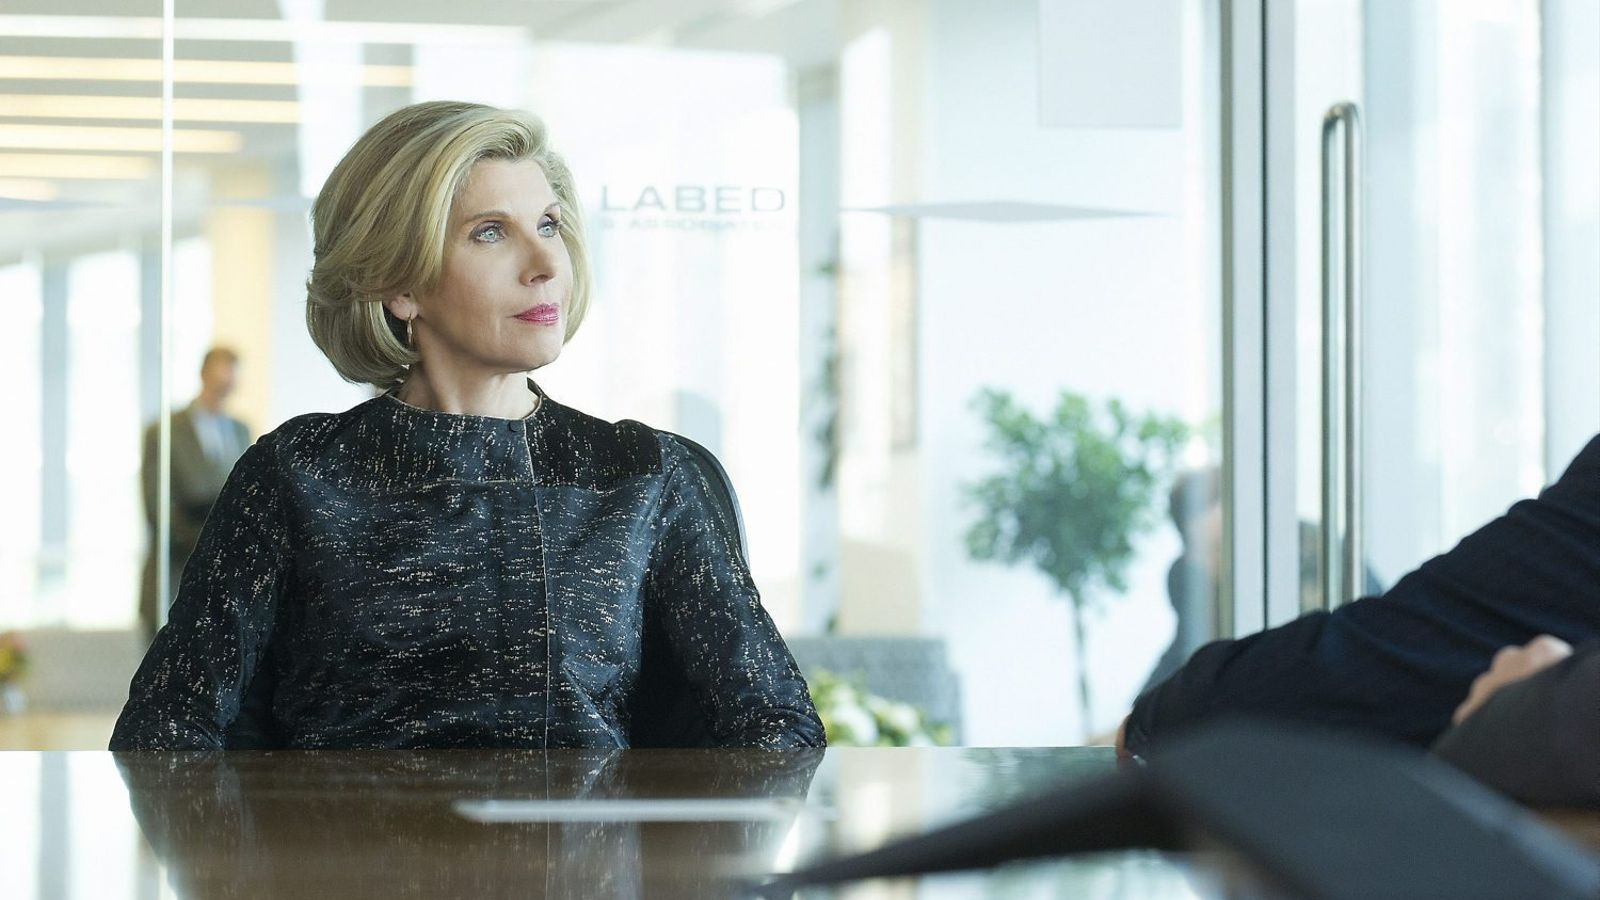 'The good fight' arriba a Movistar+ amb doble episodi